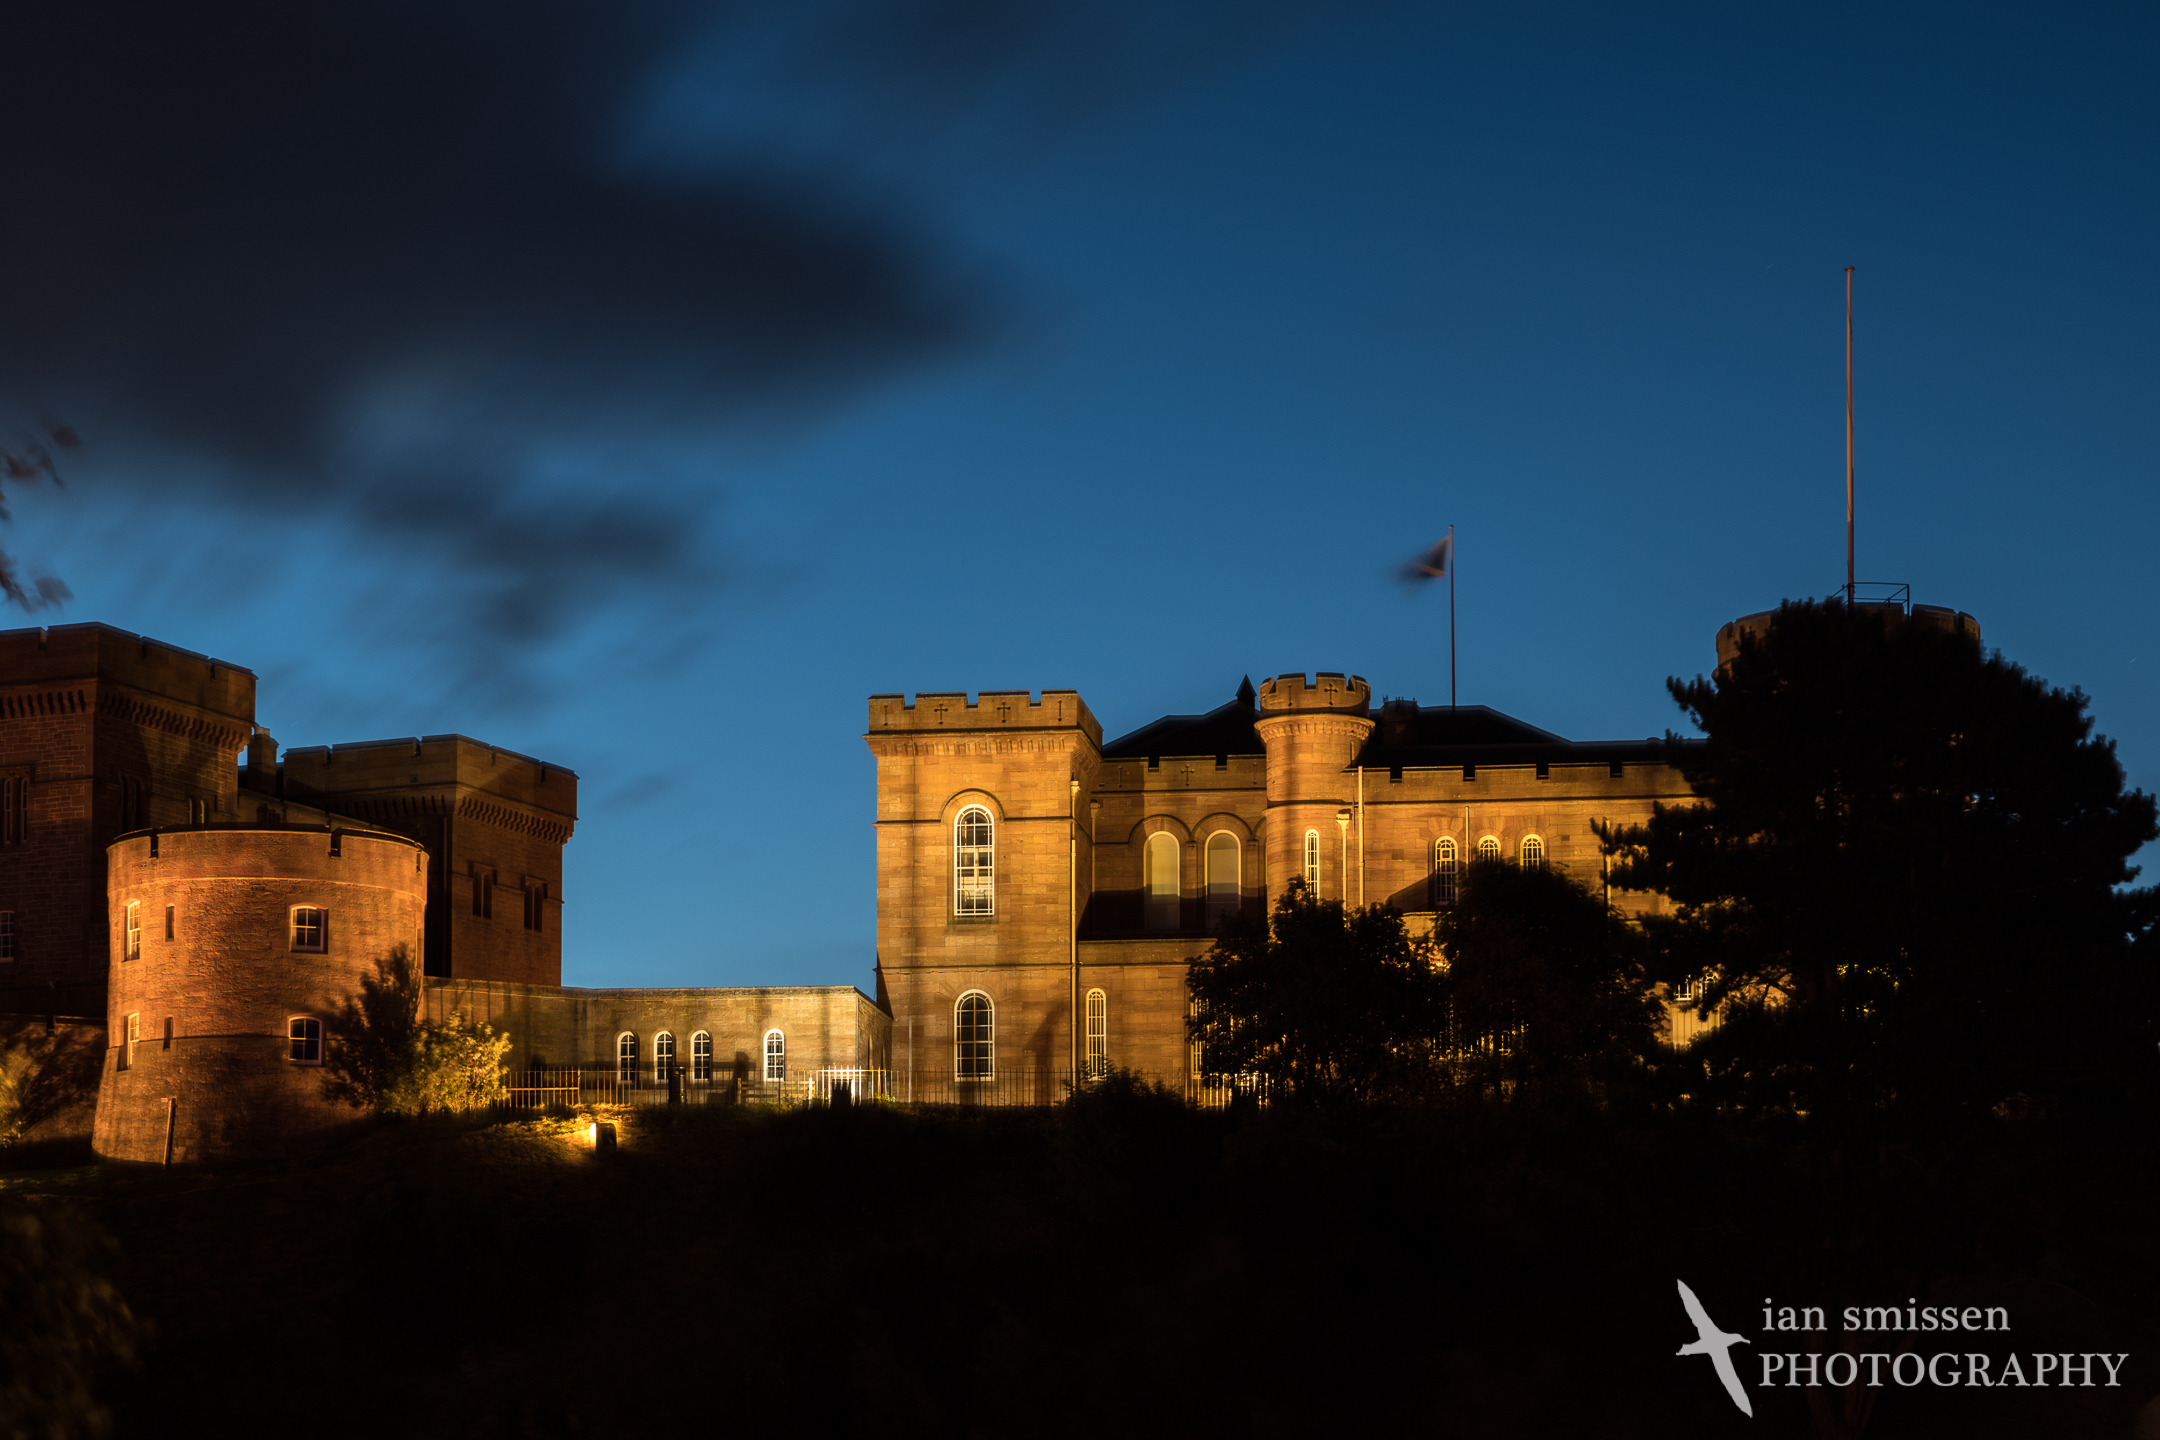 Early morning, Inverness Castle